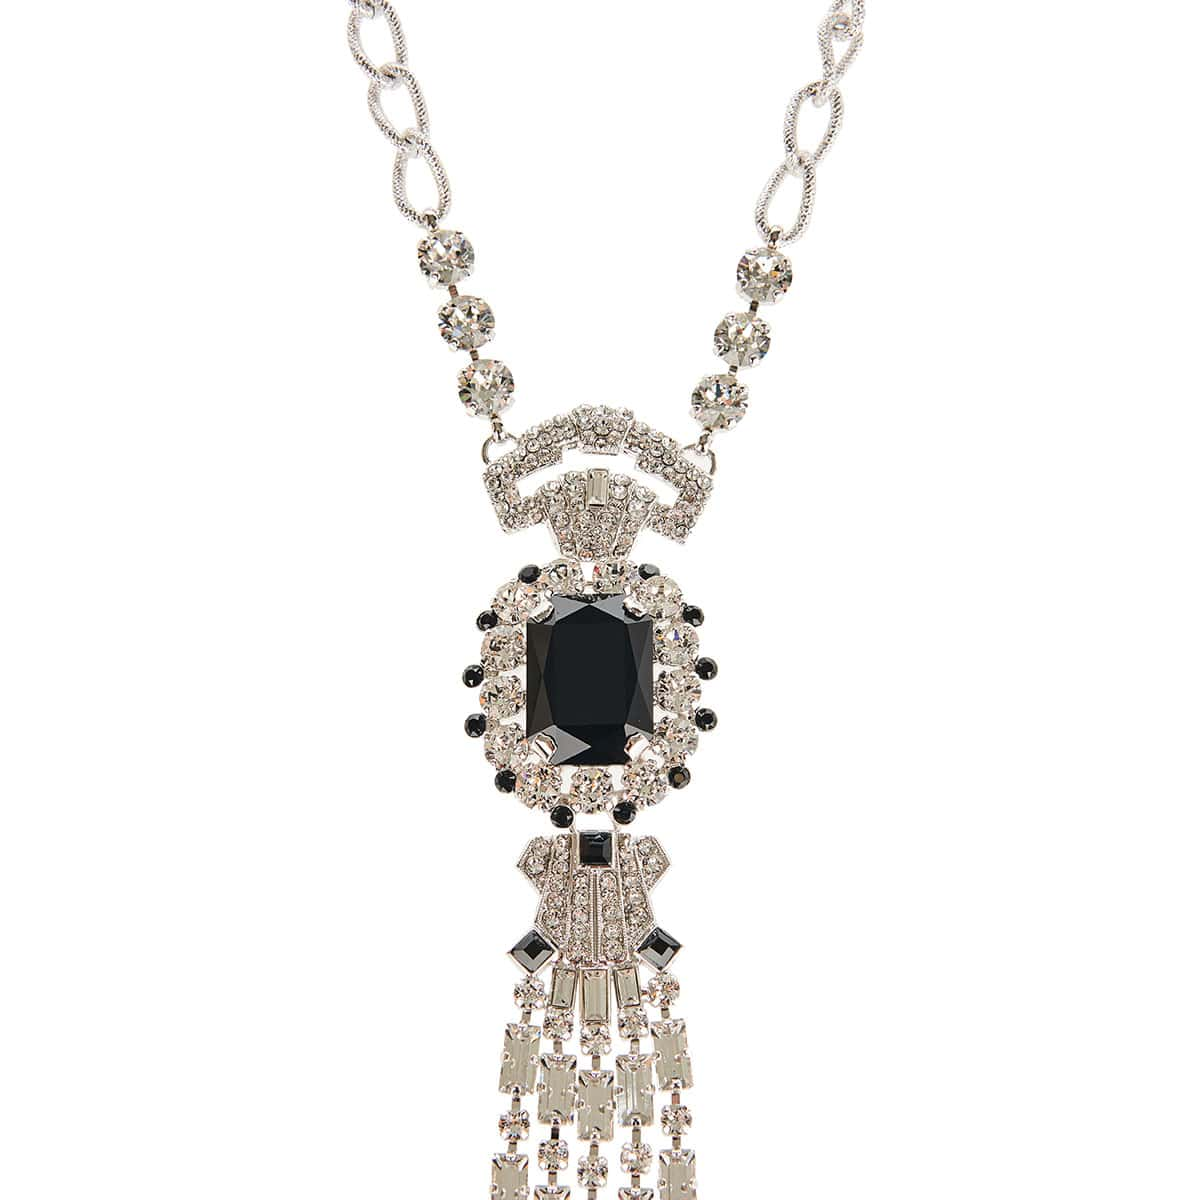 Crystal-embellished charm necklace